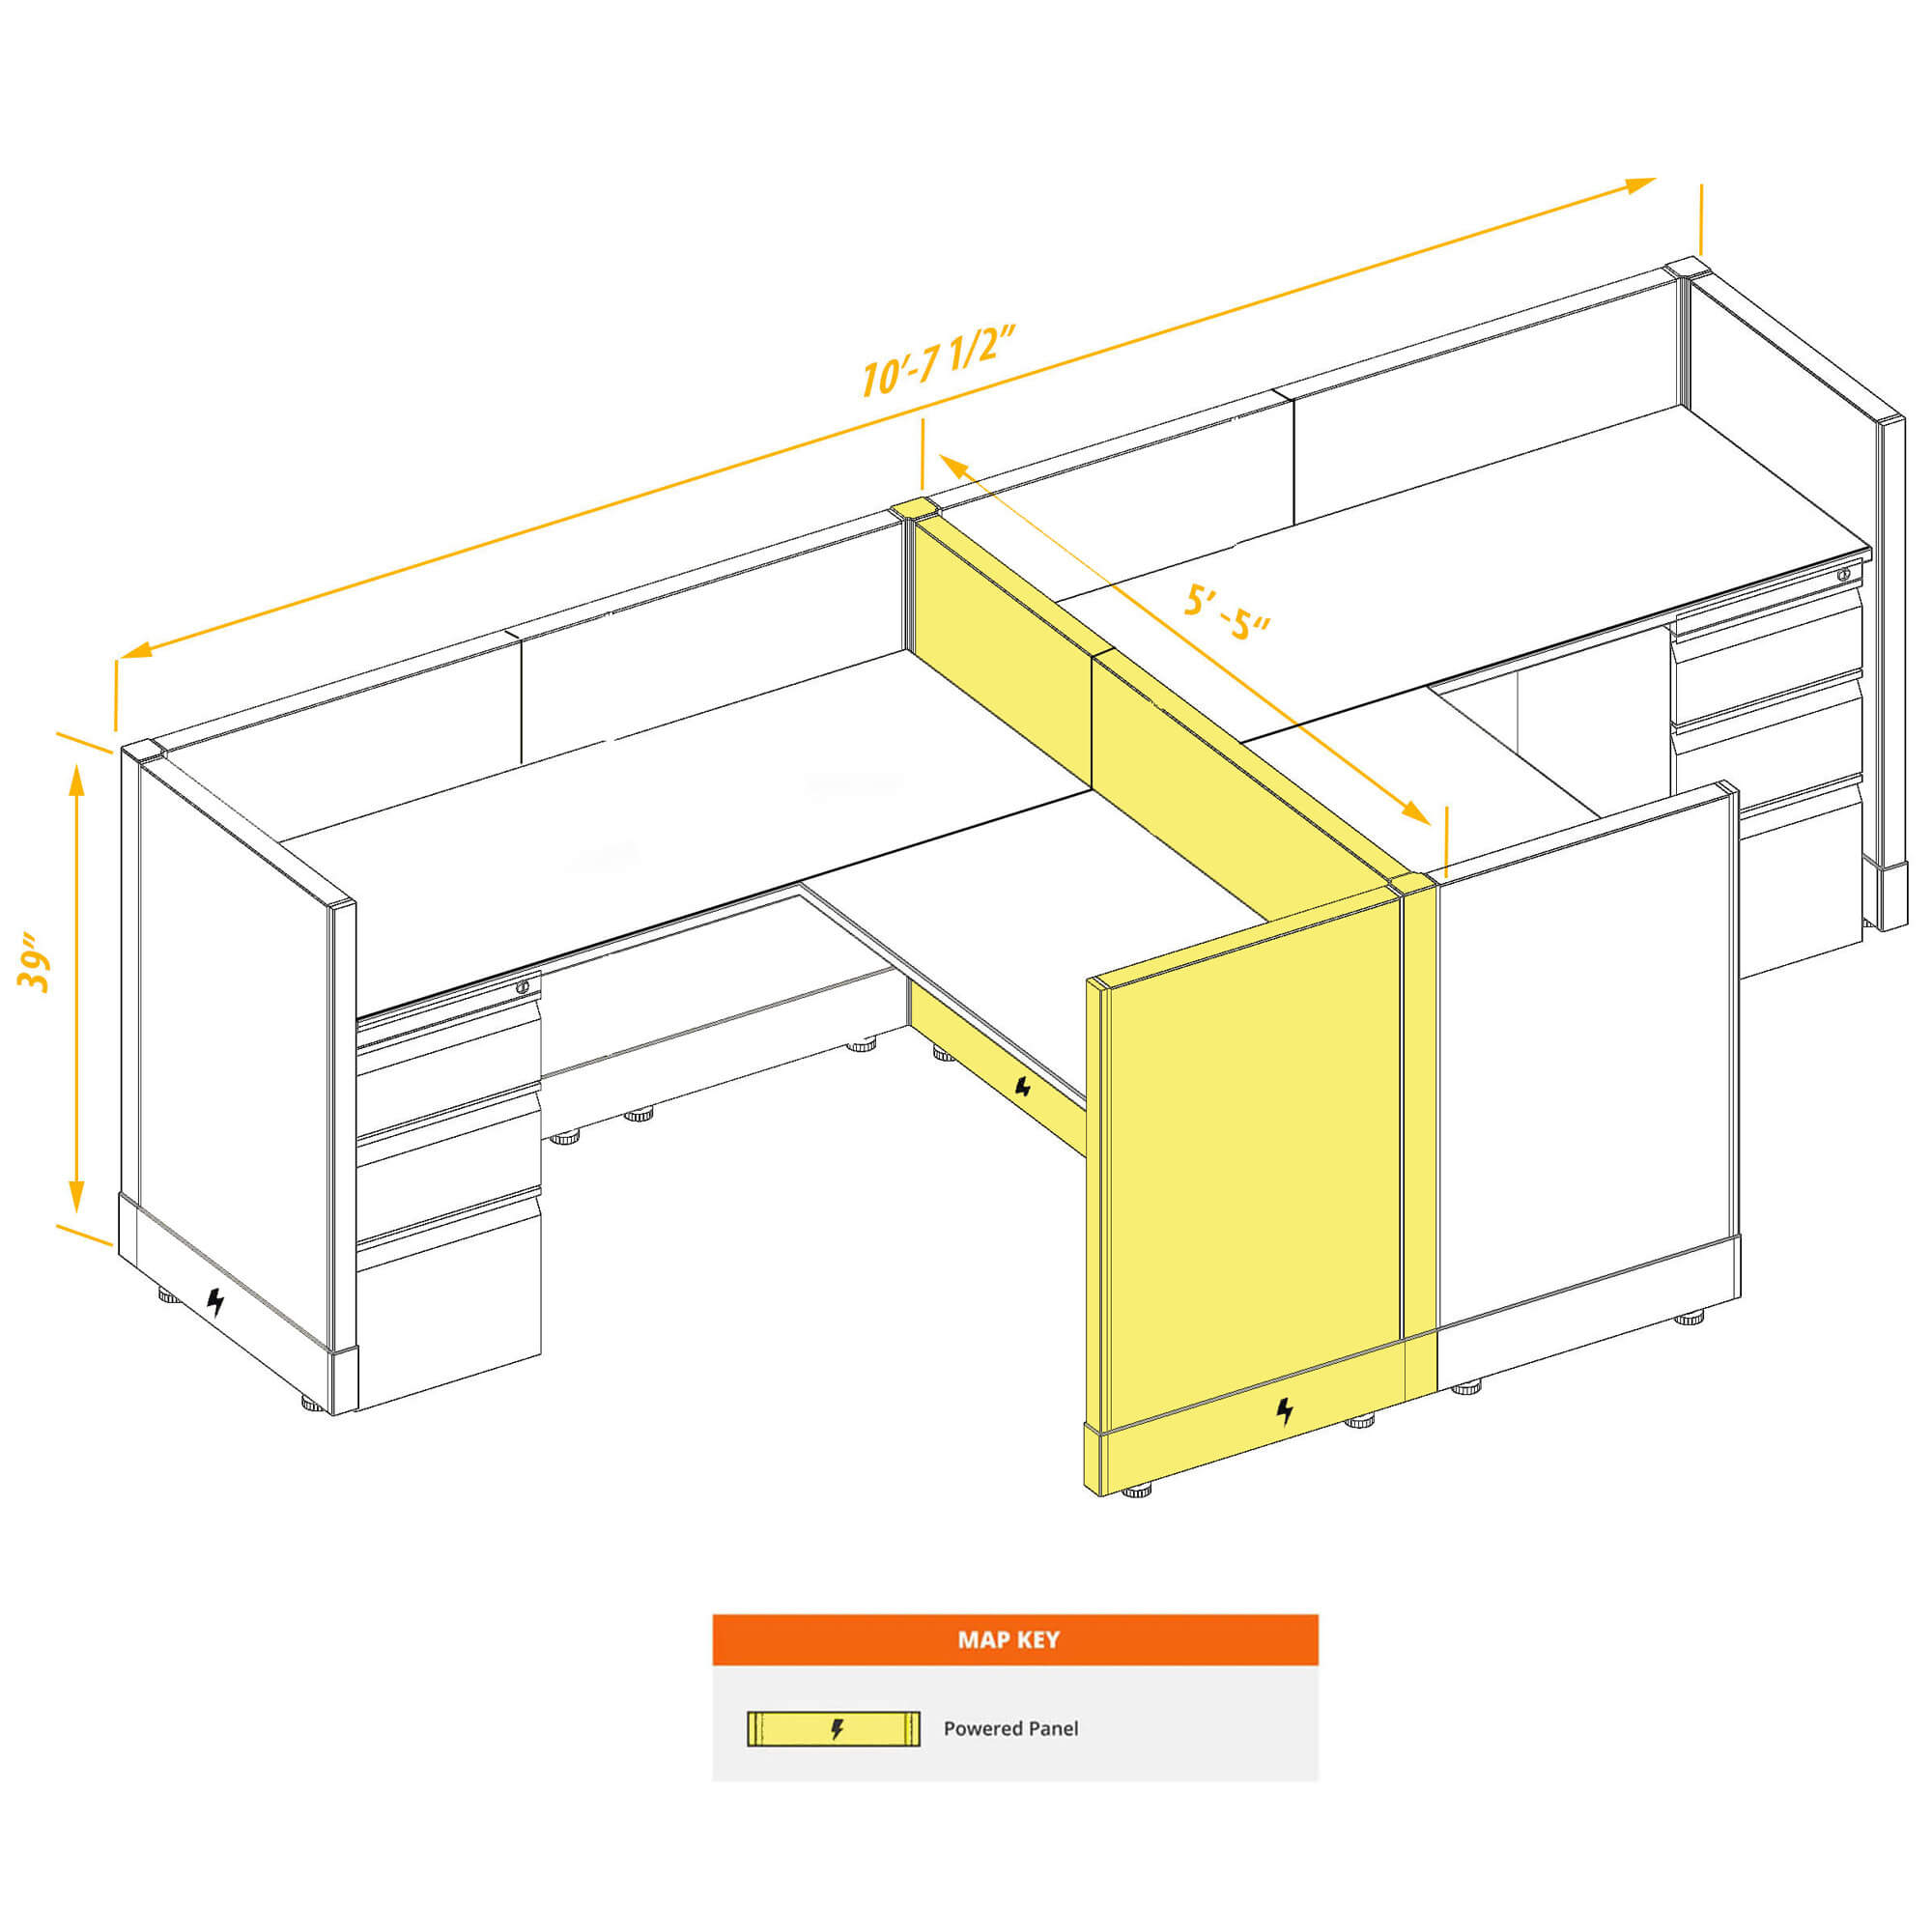 Modular furniture CUB 2a 39 P 55 PSO